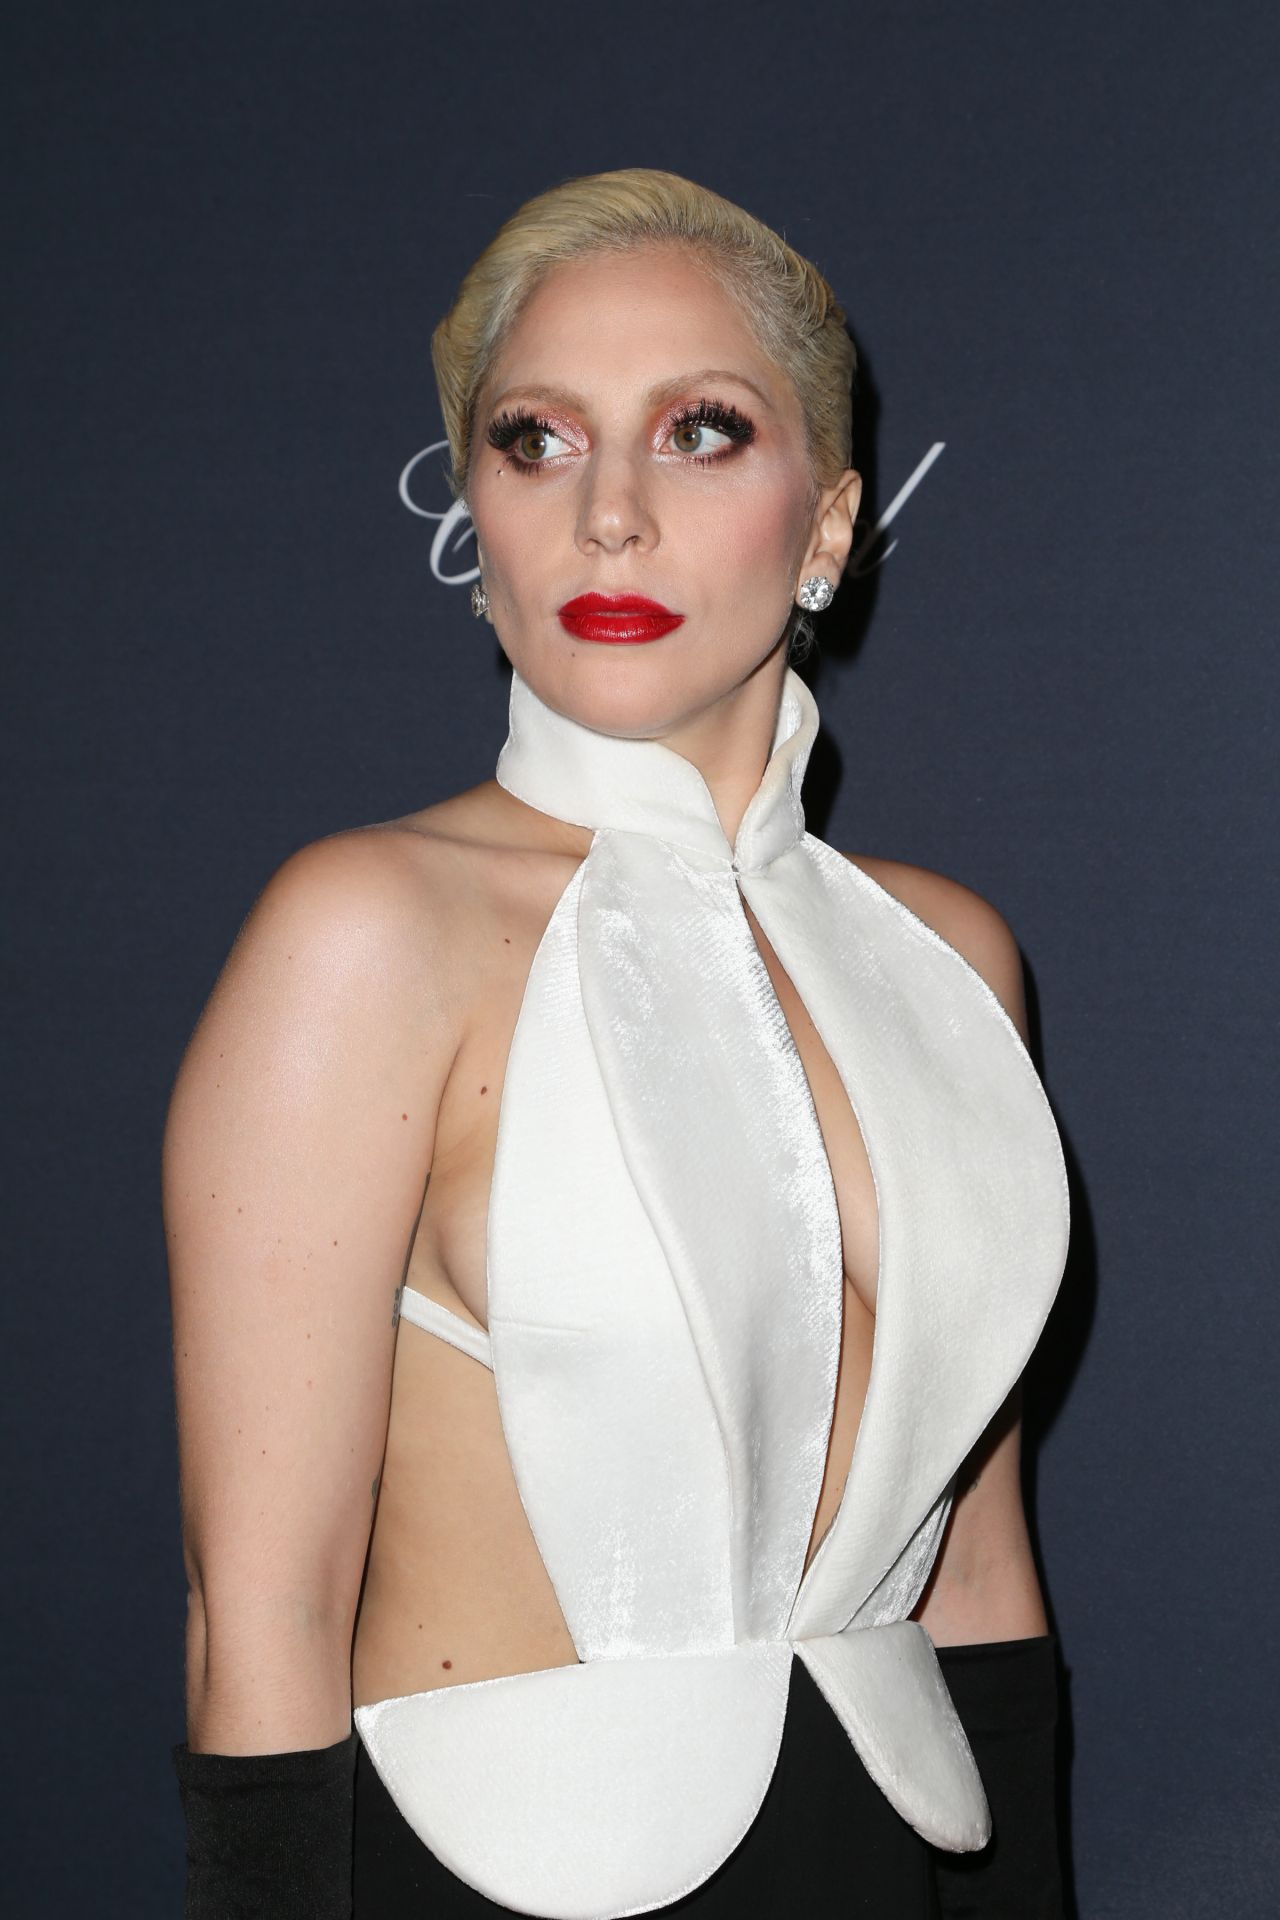 lady-gaga-weinstein-company-s-pre-oscar-dinner-in-beverly-hills-2-27-2016-3